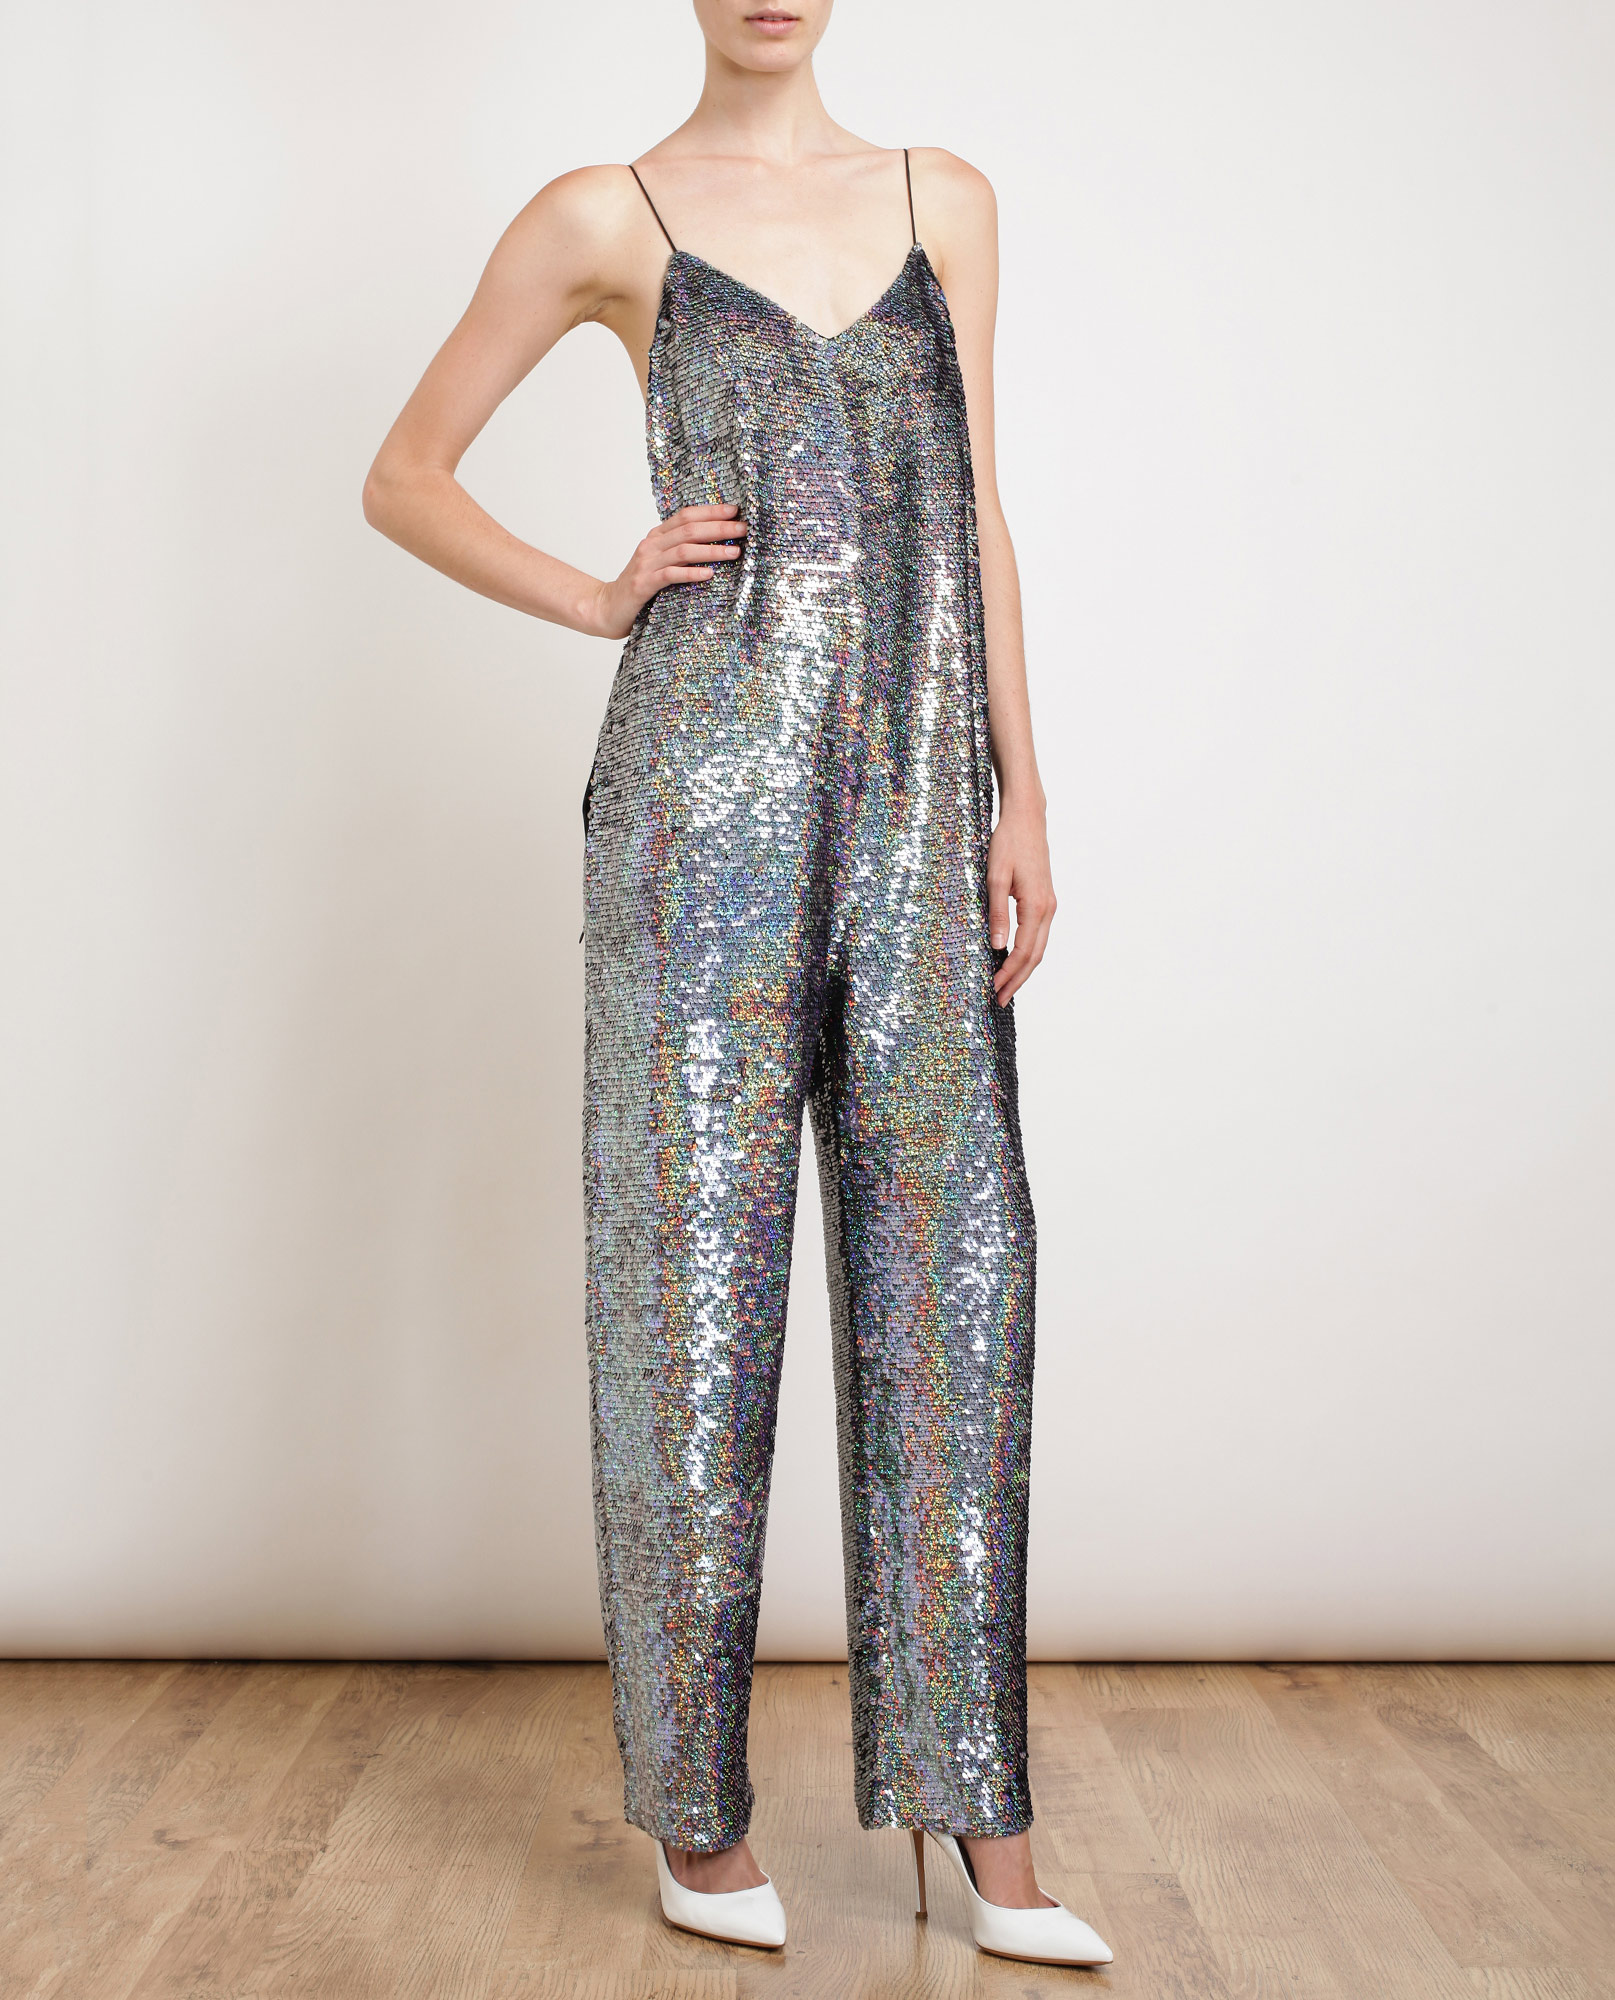 9f8ee173159 Ashish Holographic Sequin Jumpsuit in Silver